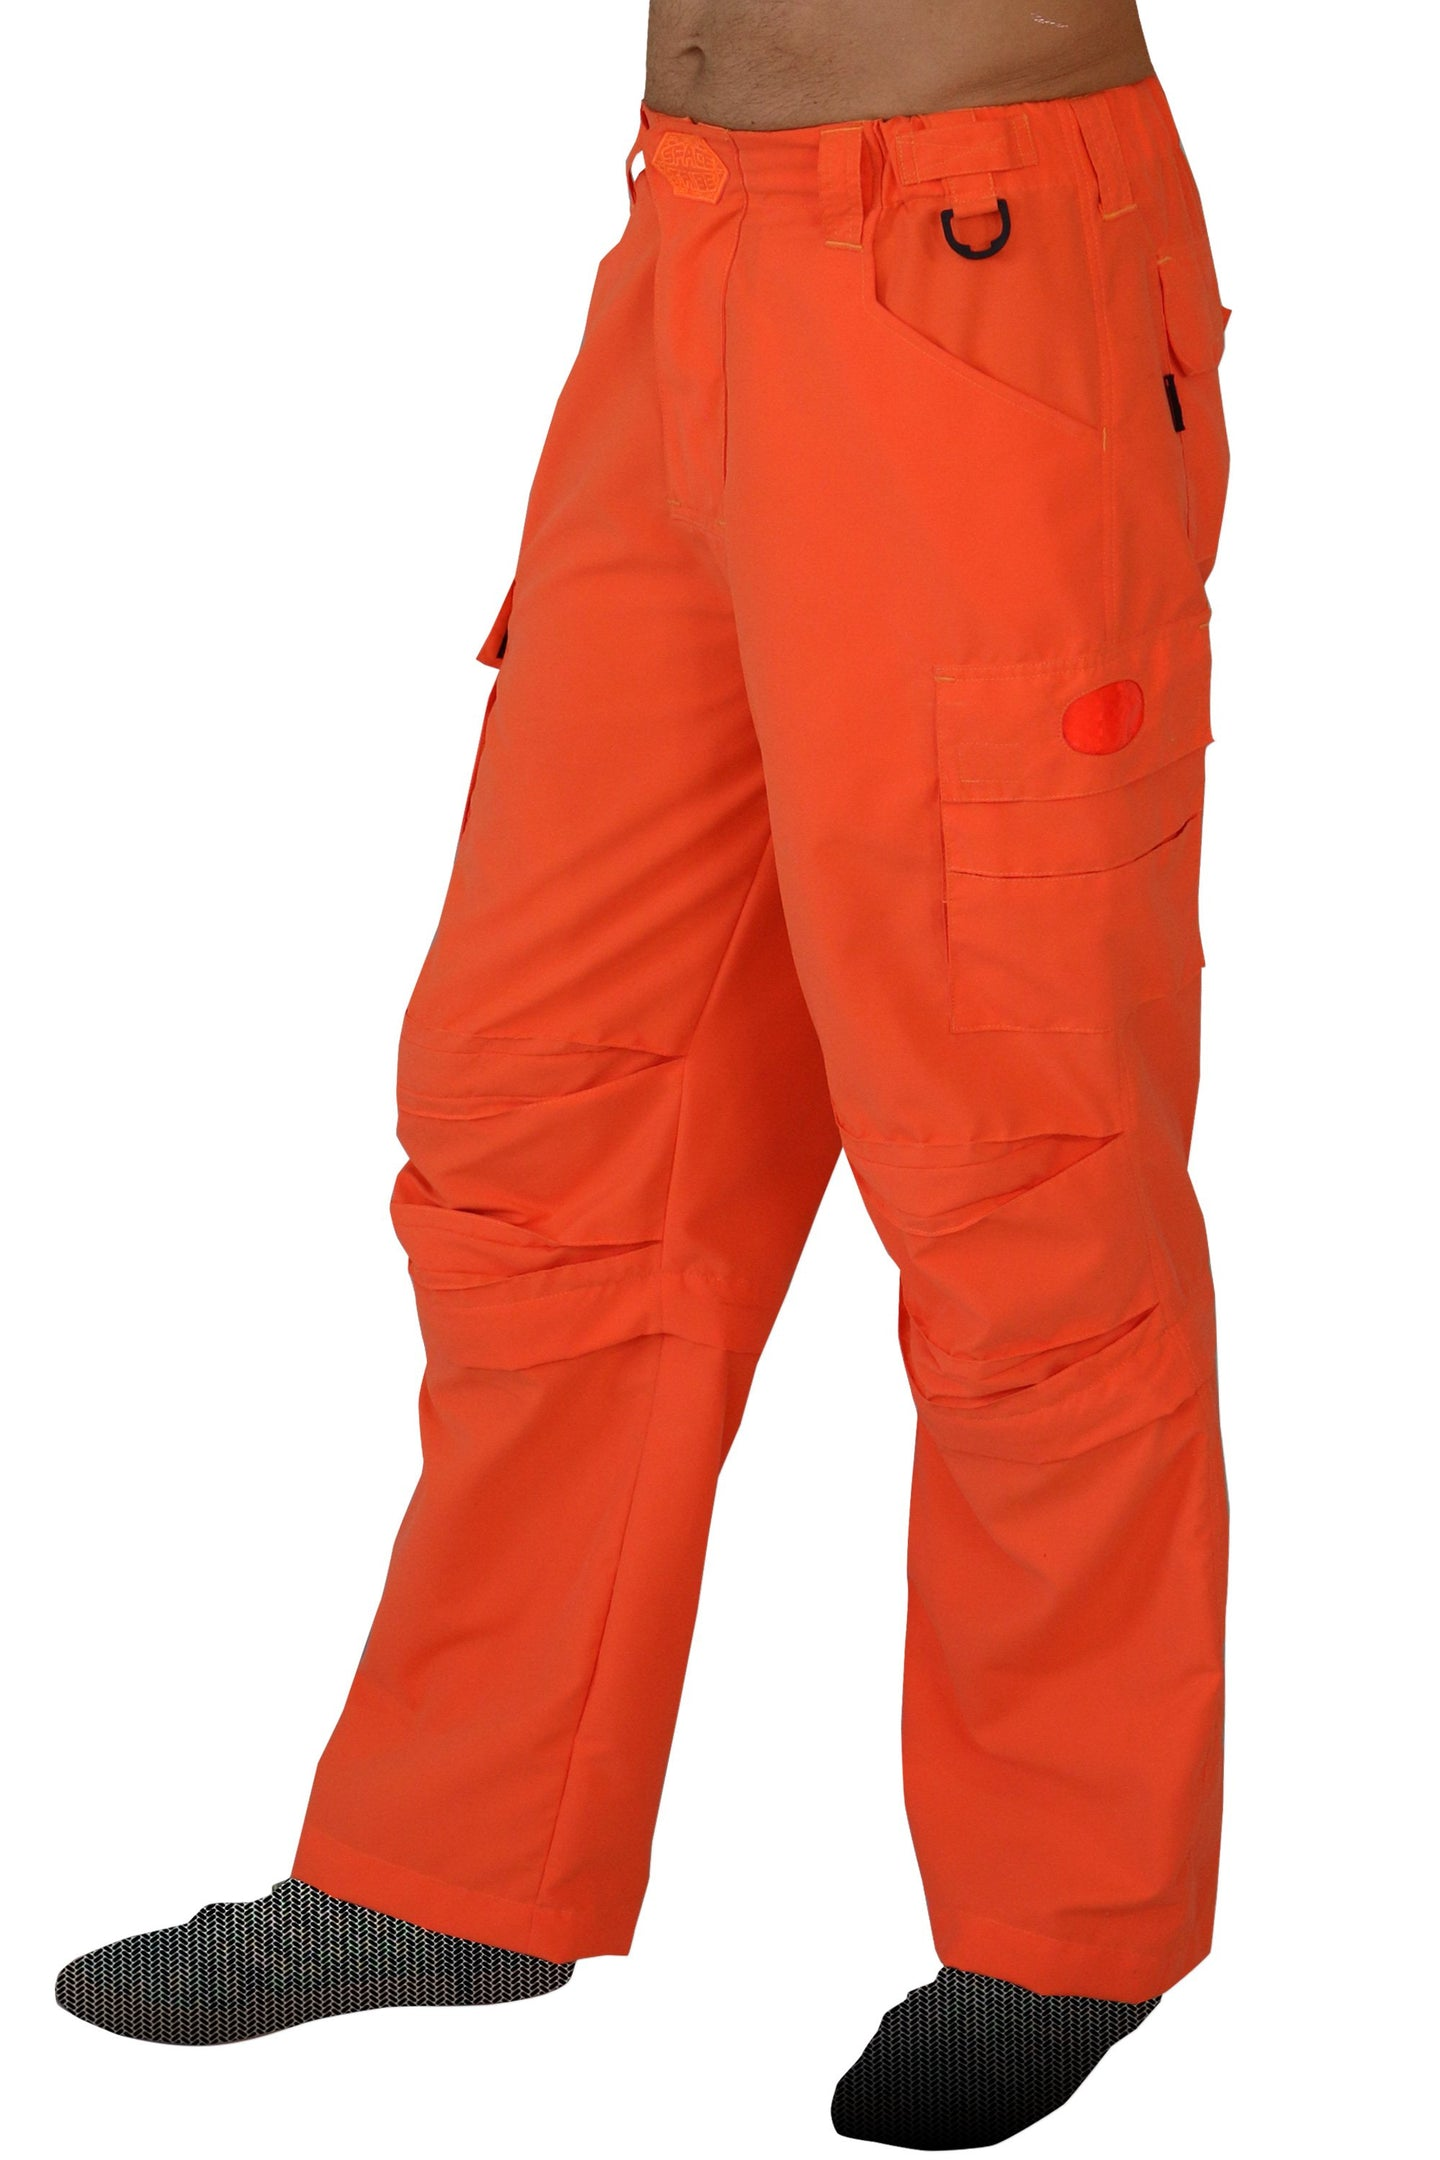 Cyber Pants : UV Orange - Men Pants - Space Tribe